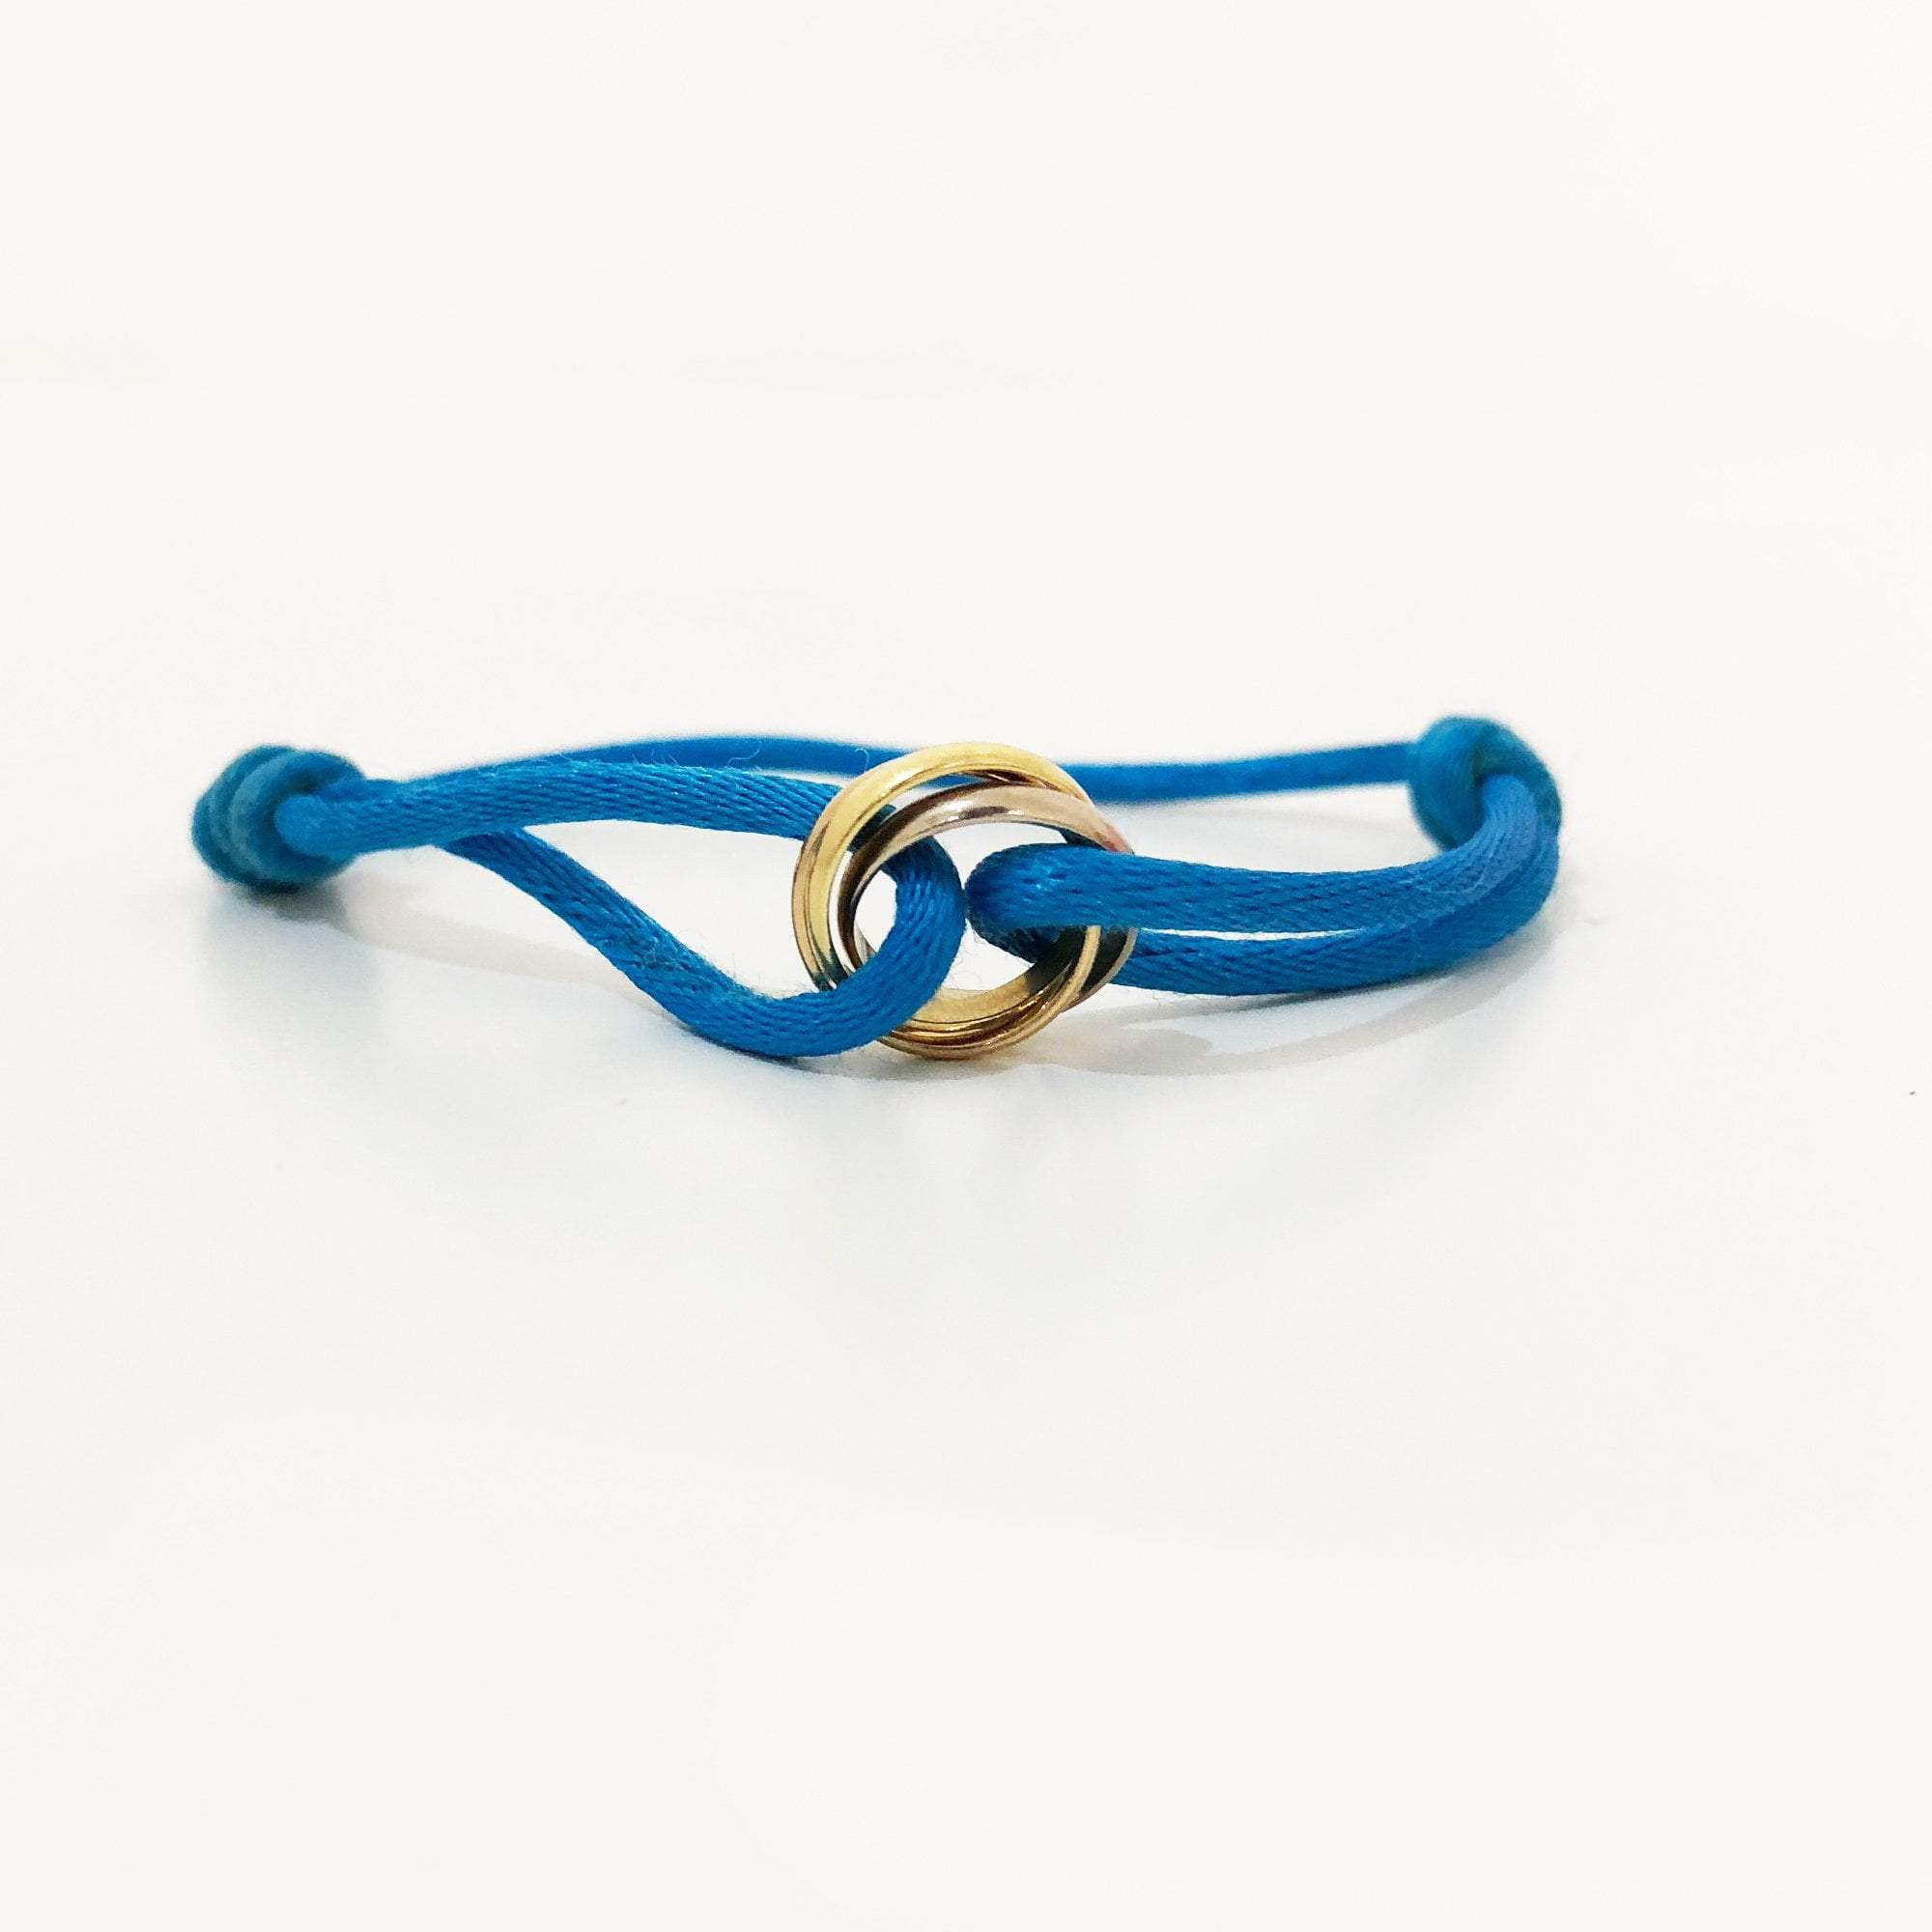 c55469e6cbaa0a Cartier Trinity Three Tone Gold Blue Adjustable Cord Bracelet ...